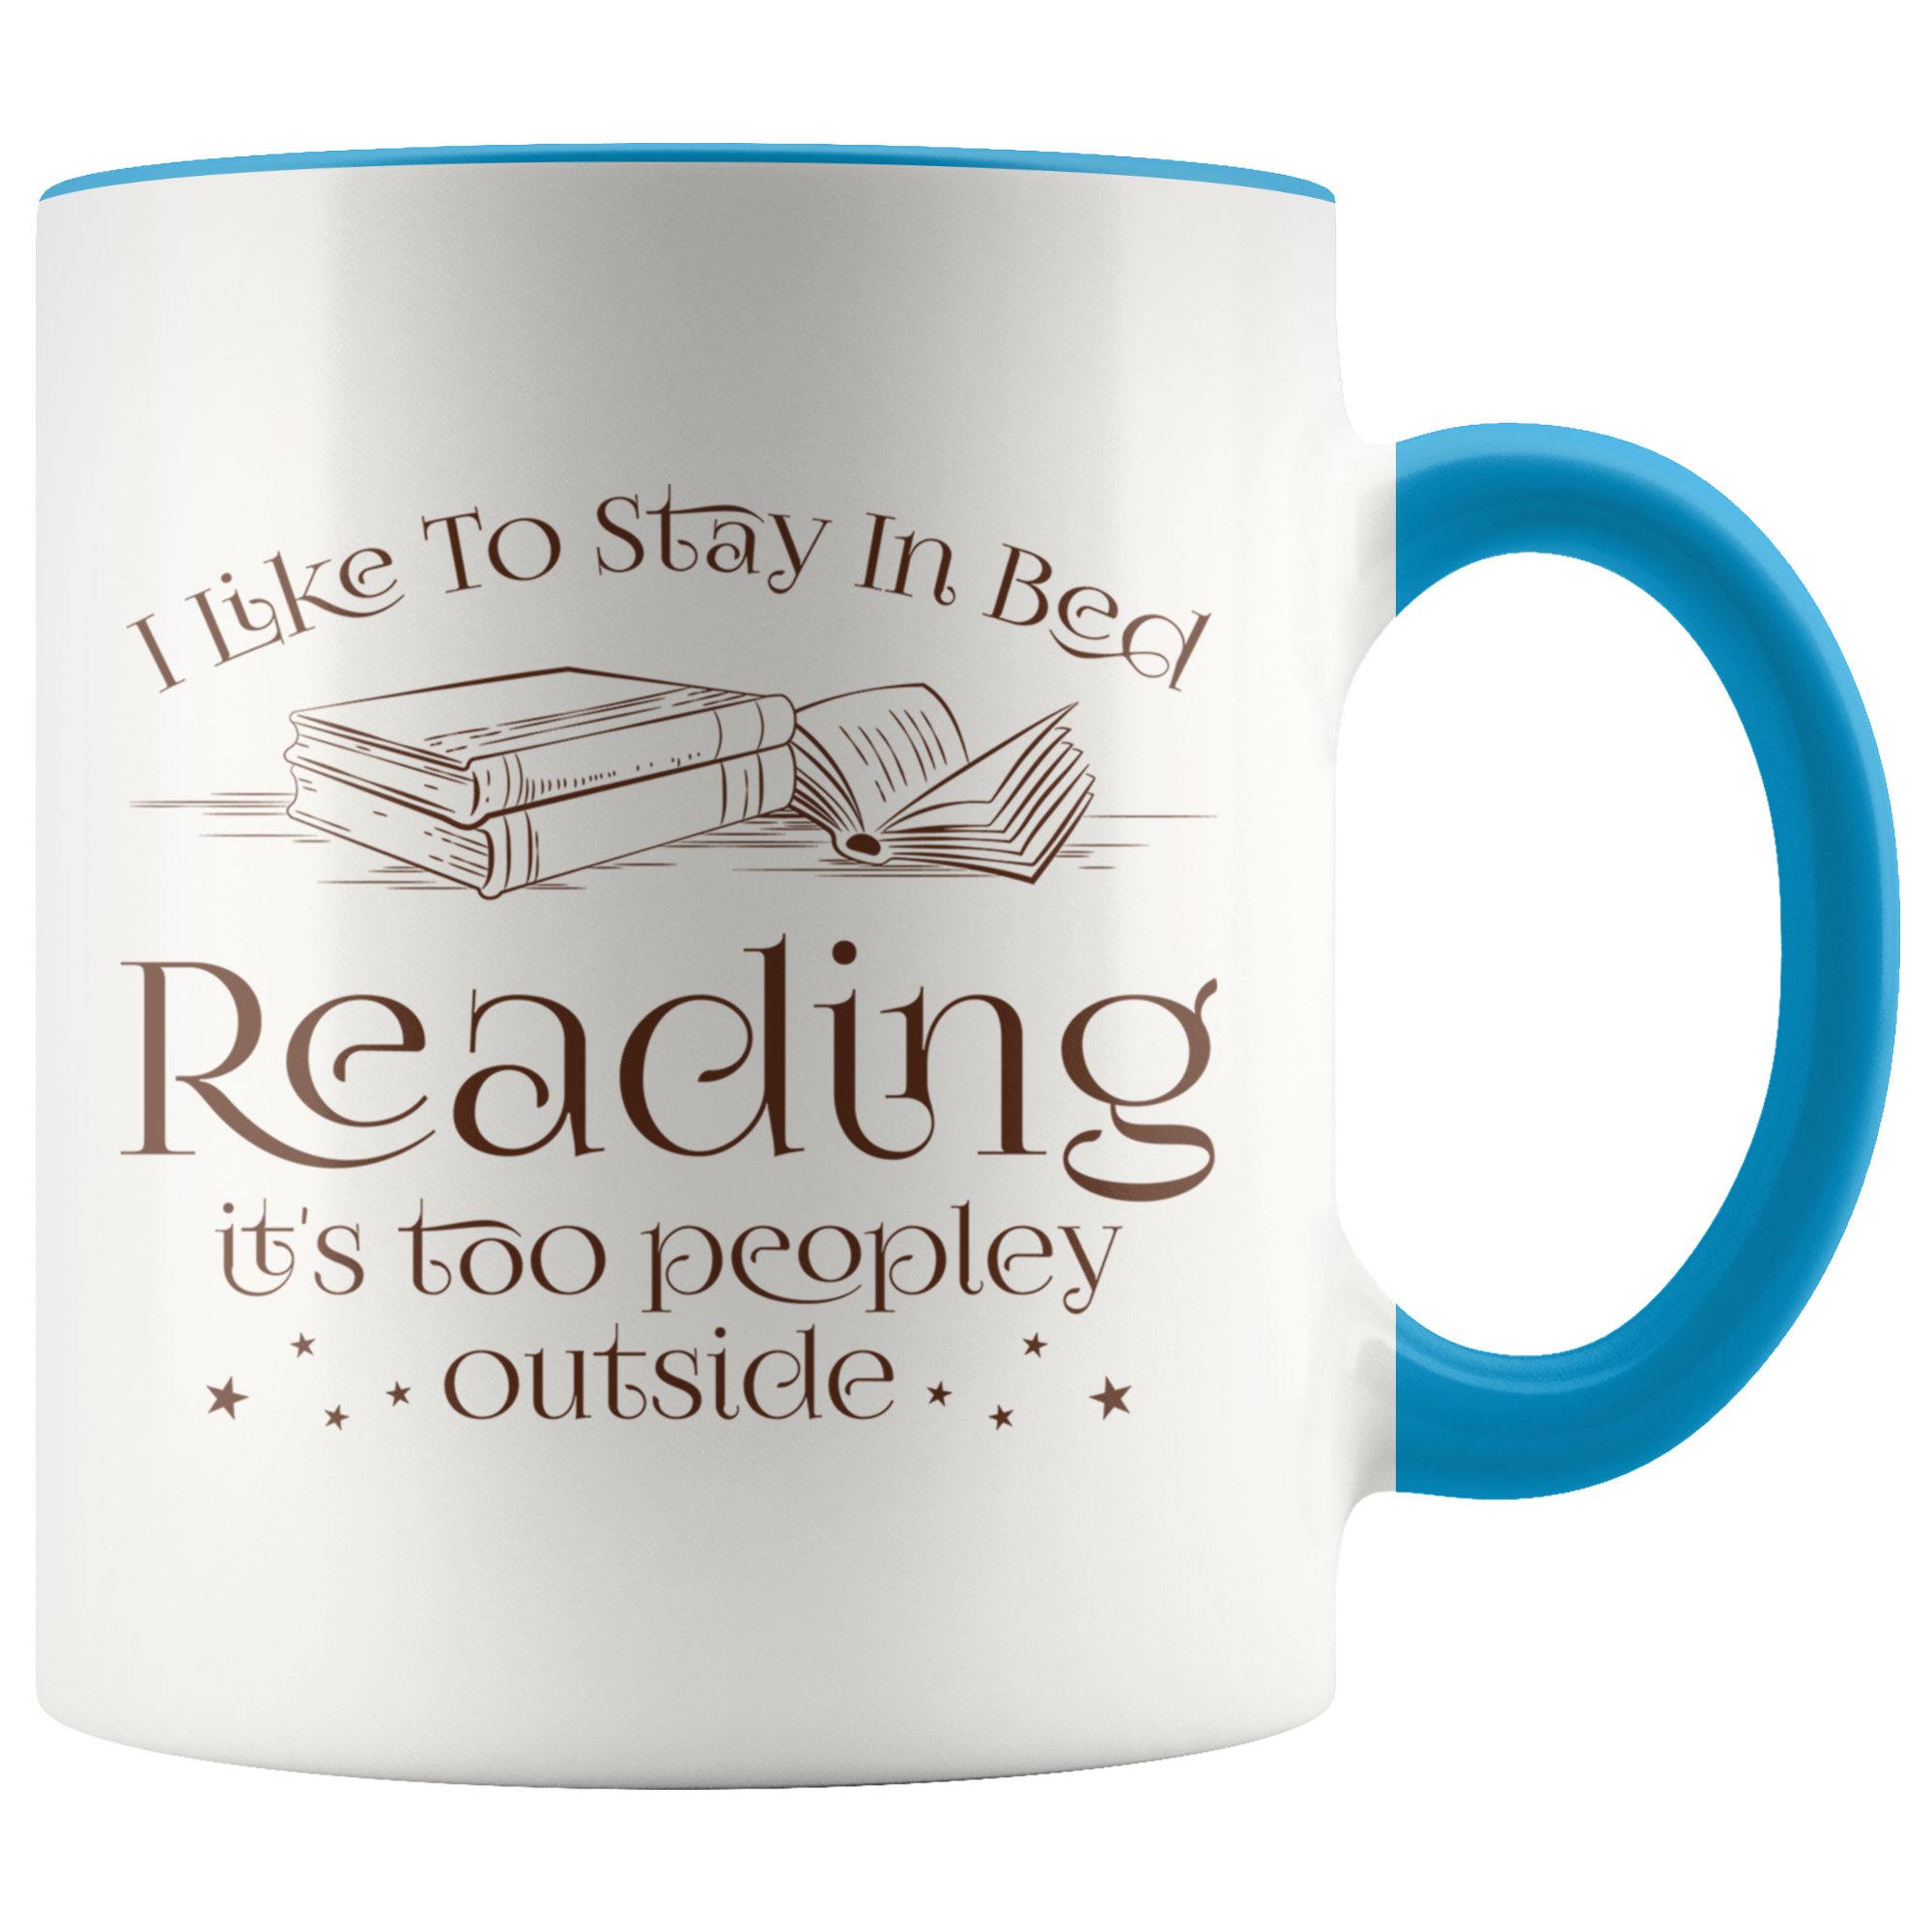 I Like To Stay In Bed Reading It's Too Peopley Outside Accent Mug